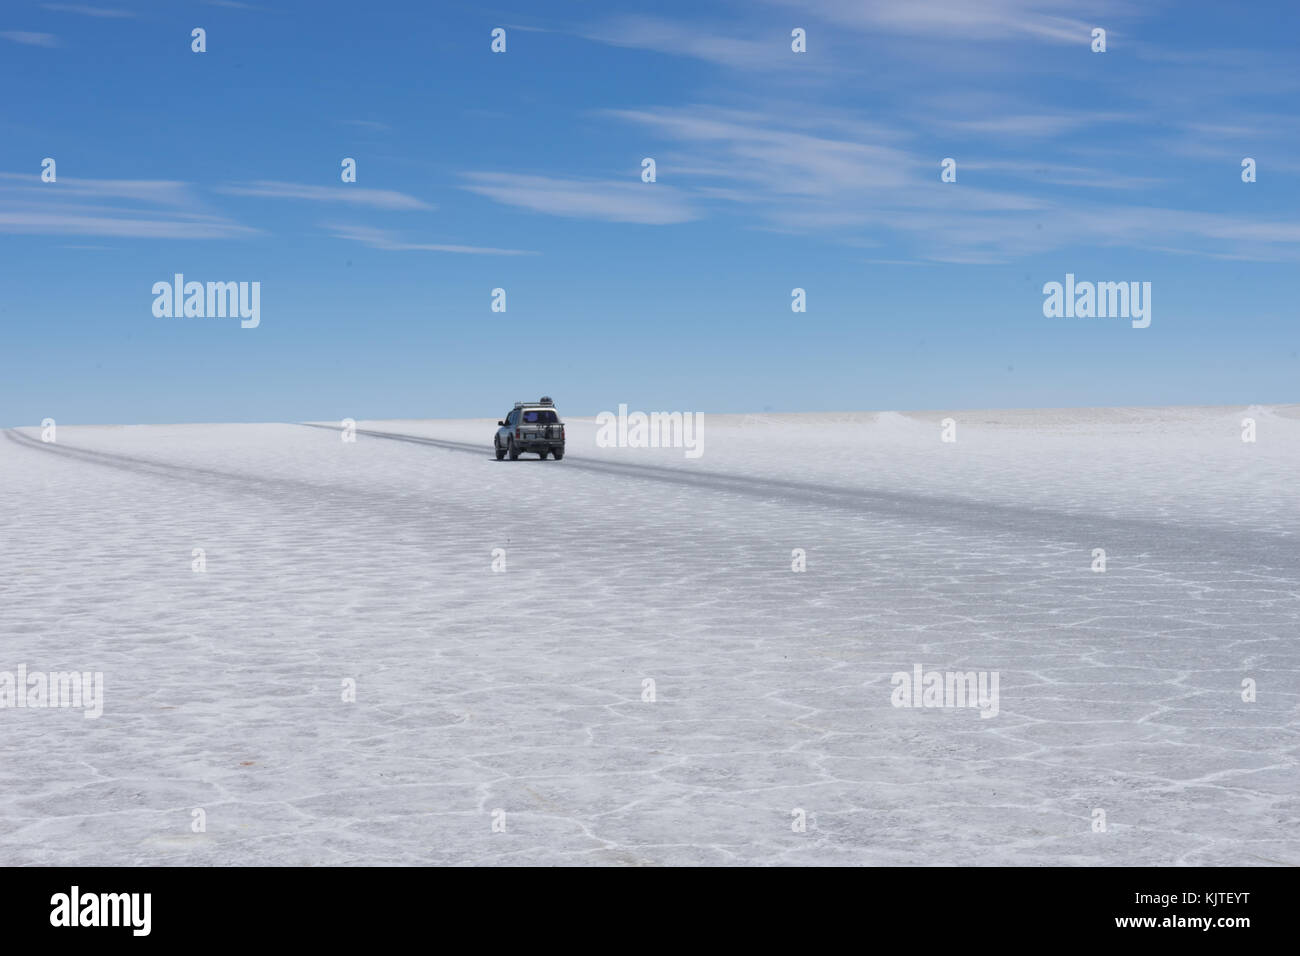 Photo taken in August 2017 in Uyuni Bolivia, South America: Jeep Tour Salt Flats in Salar de Uyuni Desert Bolivia. Stock Photo